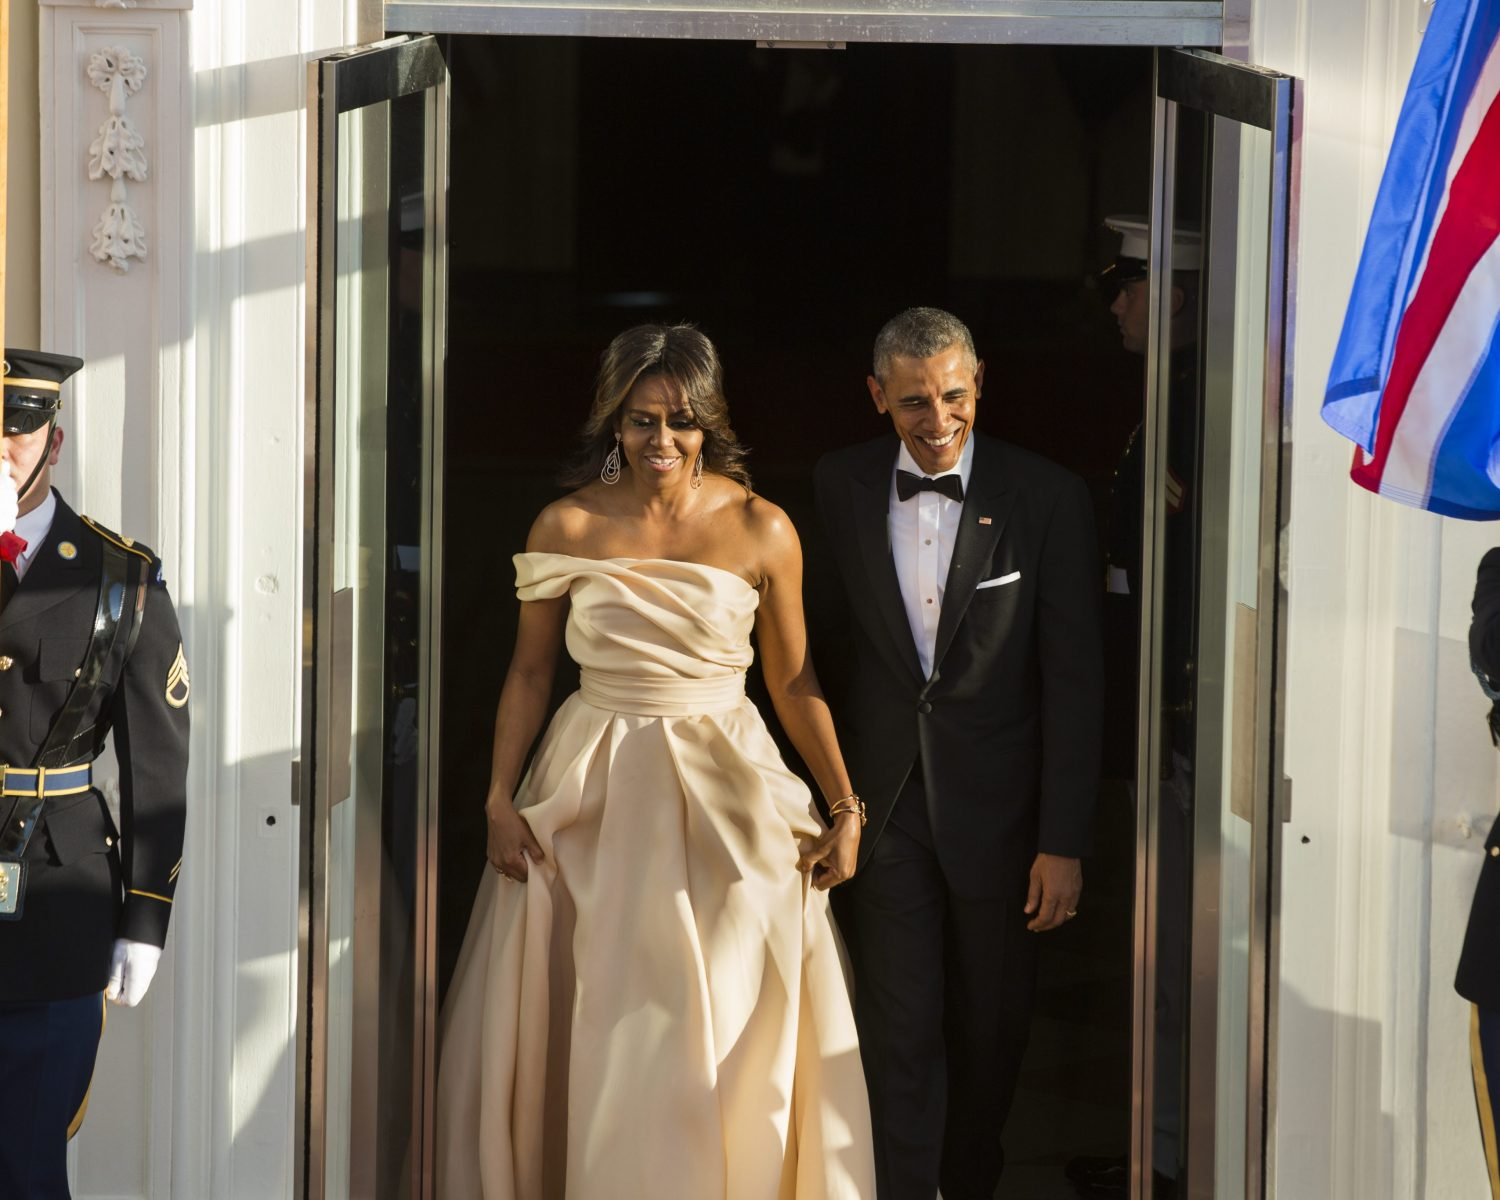 The Obamas Sent J.Lo and A-Rod a Congratulatory Engagement Note